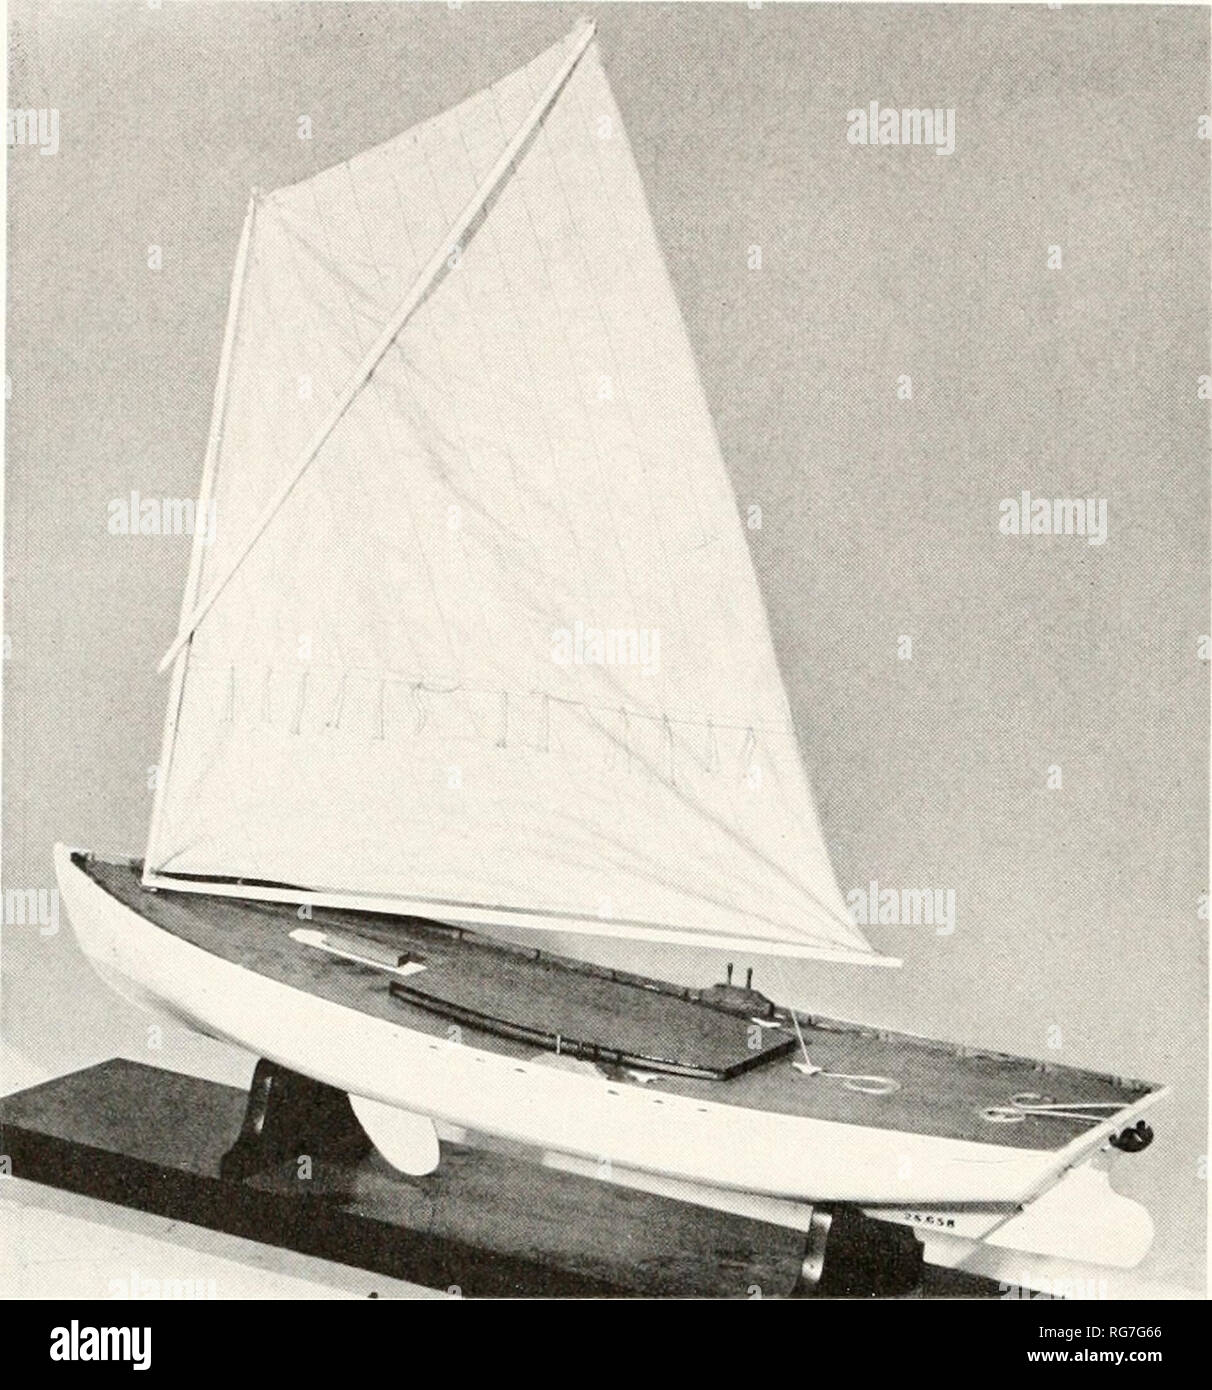 . Bulletin - United States National Museum. Science. Egg Harbor Melon-Seed Gun- ning Skiff from lower Barnegat Bay, New Jersey. Rigged model USNM 25658 showing a typical boat of this type. {Sinithsonian lihoto 4^6gya.) was controlled Idv a yoke and steering lines, as in the sneakljox. The model shows a sqiiare-sterned caravel-planked centerboard boat having a moderate sheer, rockered keel vith skeg. ciired stem, raking transom with rudder hung outljoard, sharp entrance, and an easy, well formed run. The midsection shows a slightly rising straight floor, slack rounded bilge, and flaring tops - Stock Image